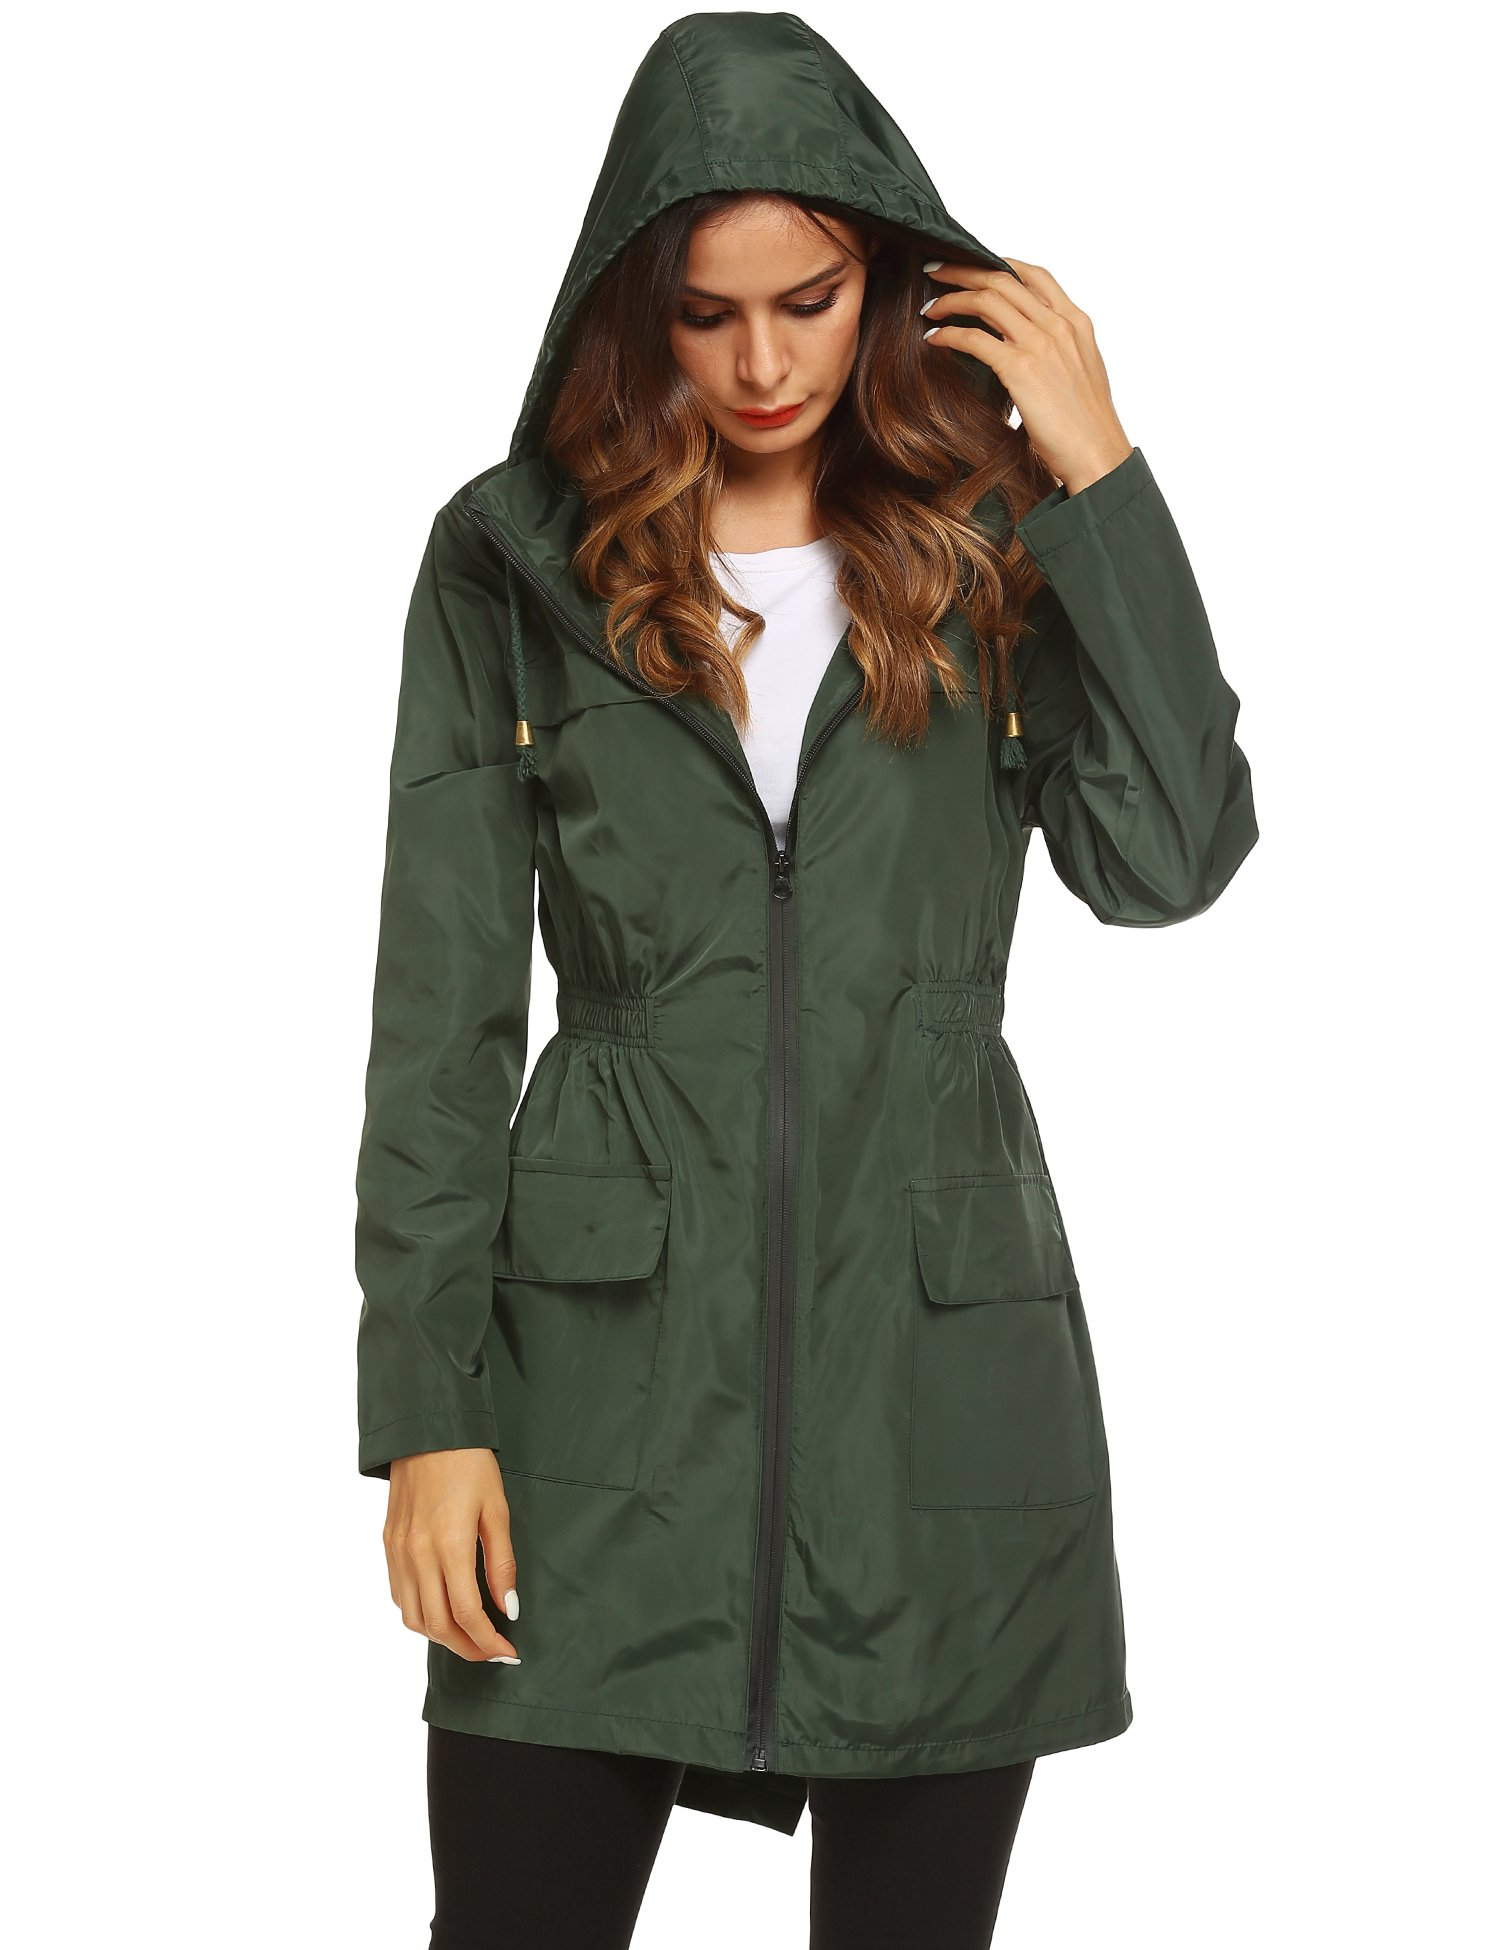 LOMON Womens Lightweight Sun Protect Hooded Quick Dry Windproof Trench Rain Jacket